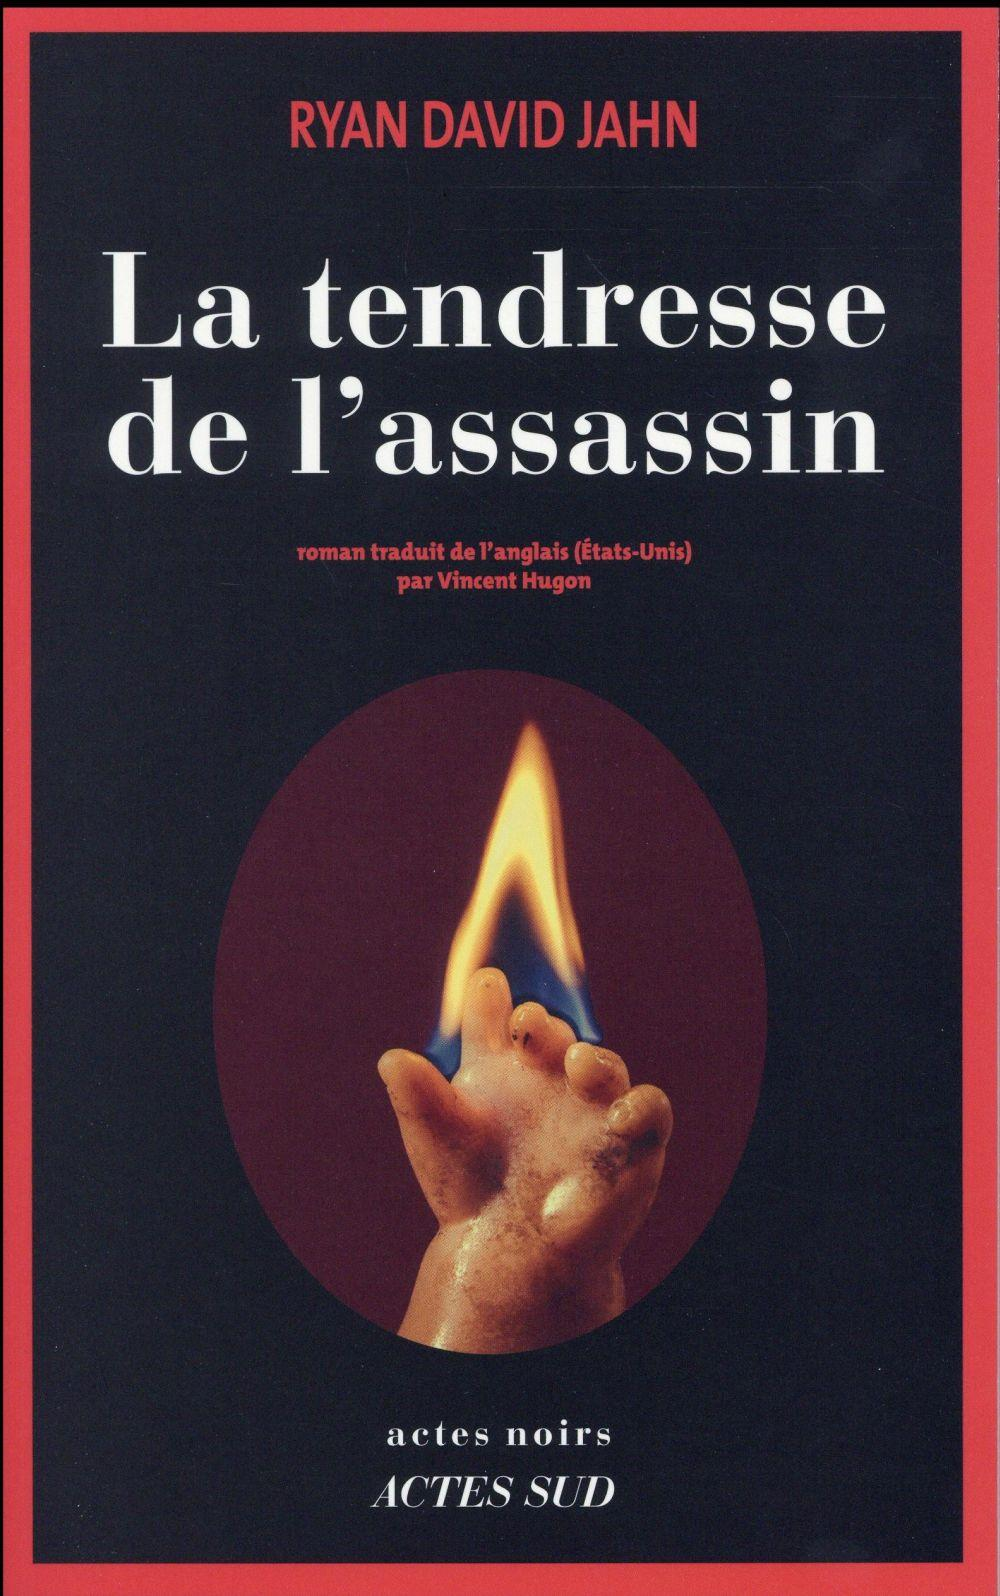 La tendresse de l'assassin  - Ryan David Jahn